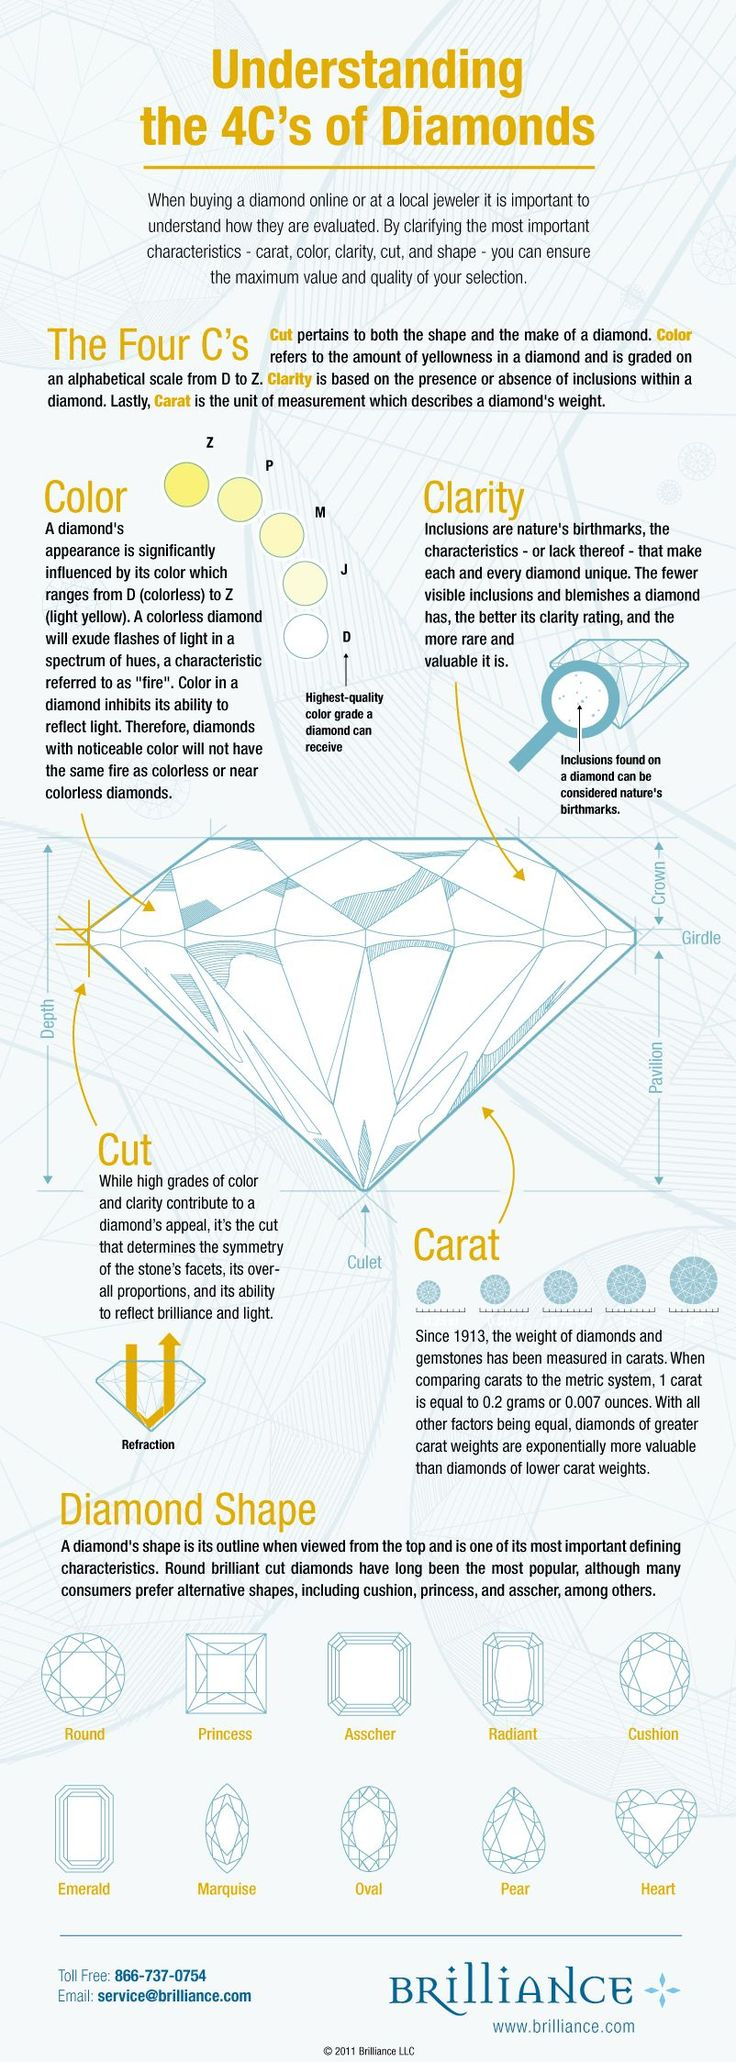 When buying loose diamonds, it is important to understand how they are evaluated. You can ensure the maximum value and quality of your selection by learning about the most important characteristics of a diamond - carat, color, clarity, cut, and shape. This visual guide to the four c's of diamonds provides a simple overview to get you started.